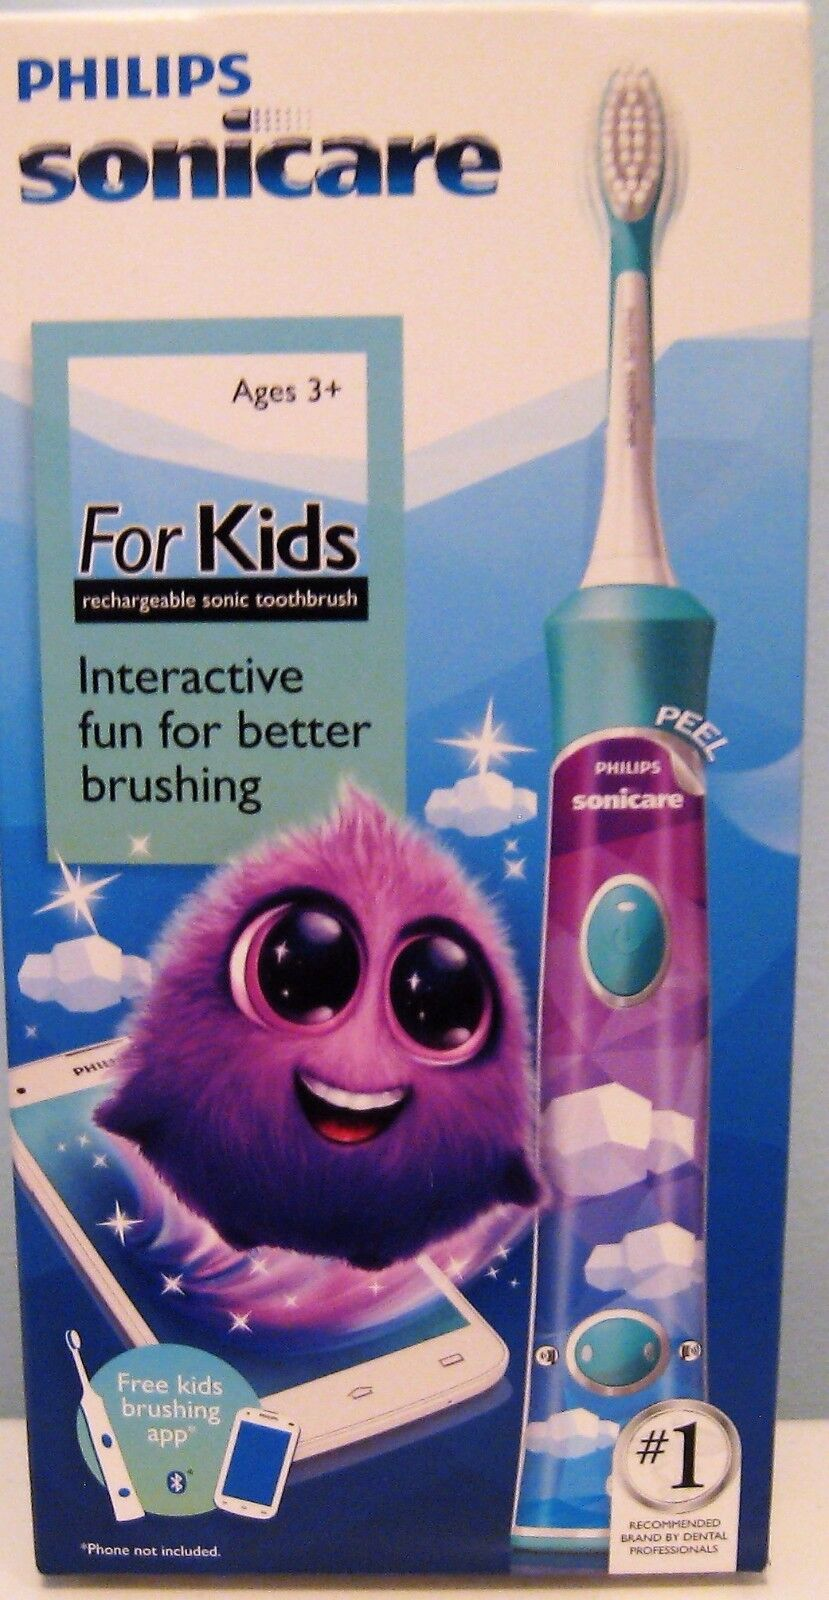 Sonicare for Kids Bluetooth-Enabled Toothbrush